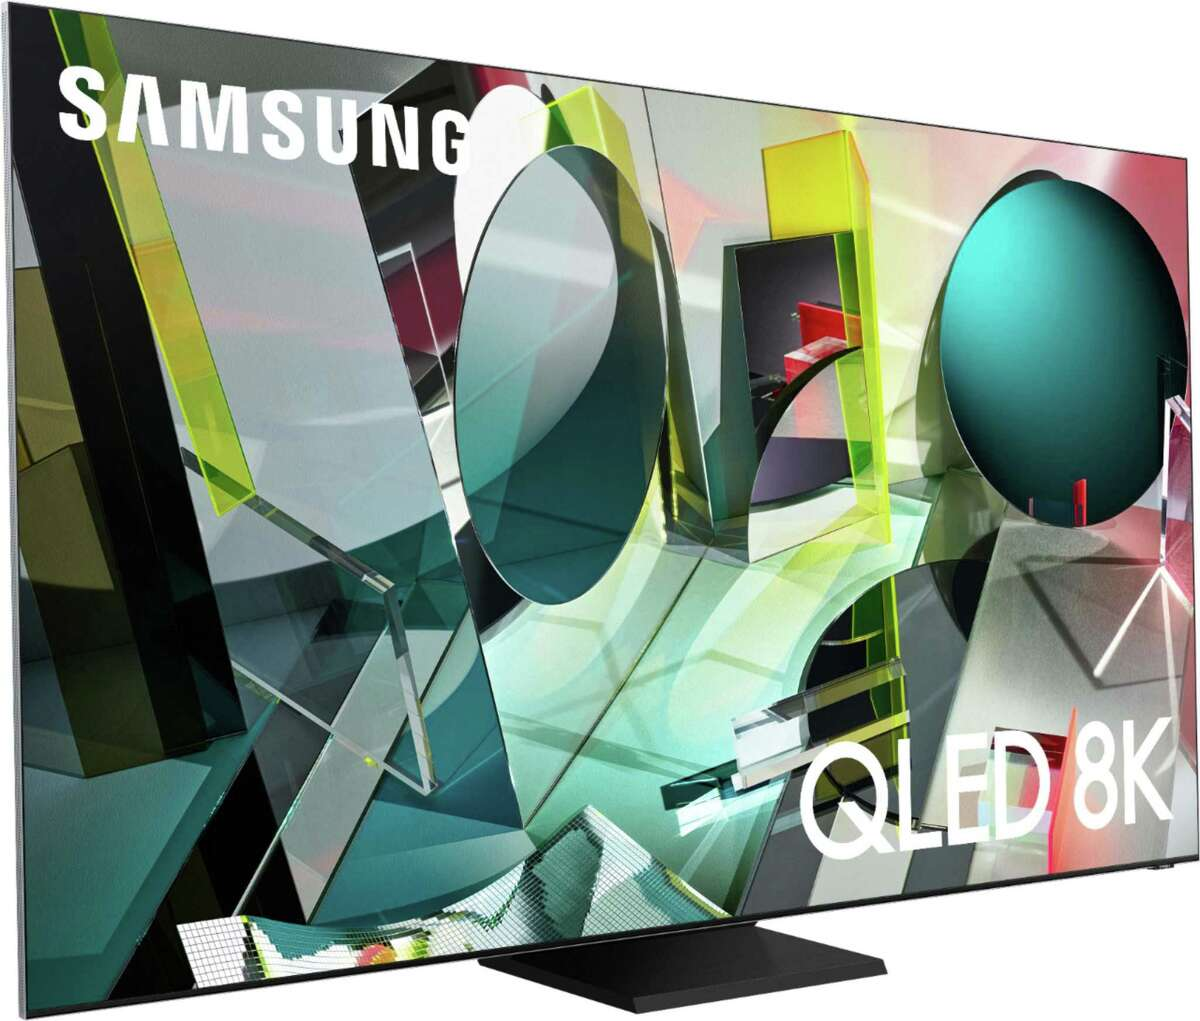 """Best Buy will be showcasing the latest and the greatest household technology to satisfy anyone's needs, wants, and desires. Visit the Best Buy booth to see a Samsung 85"""" 8k Smart TV, with four times the resolution of 4K for the next generation of resolution"""